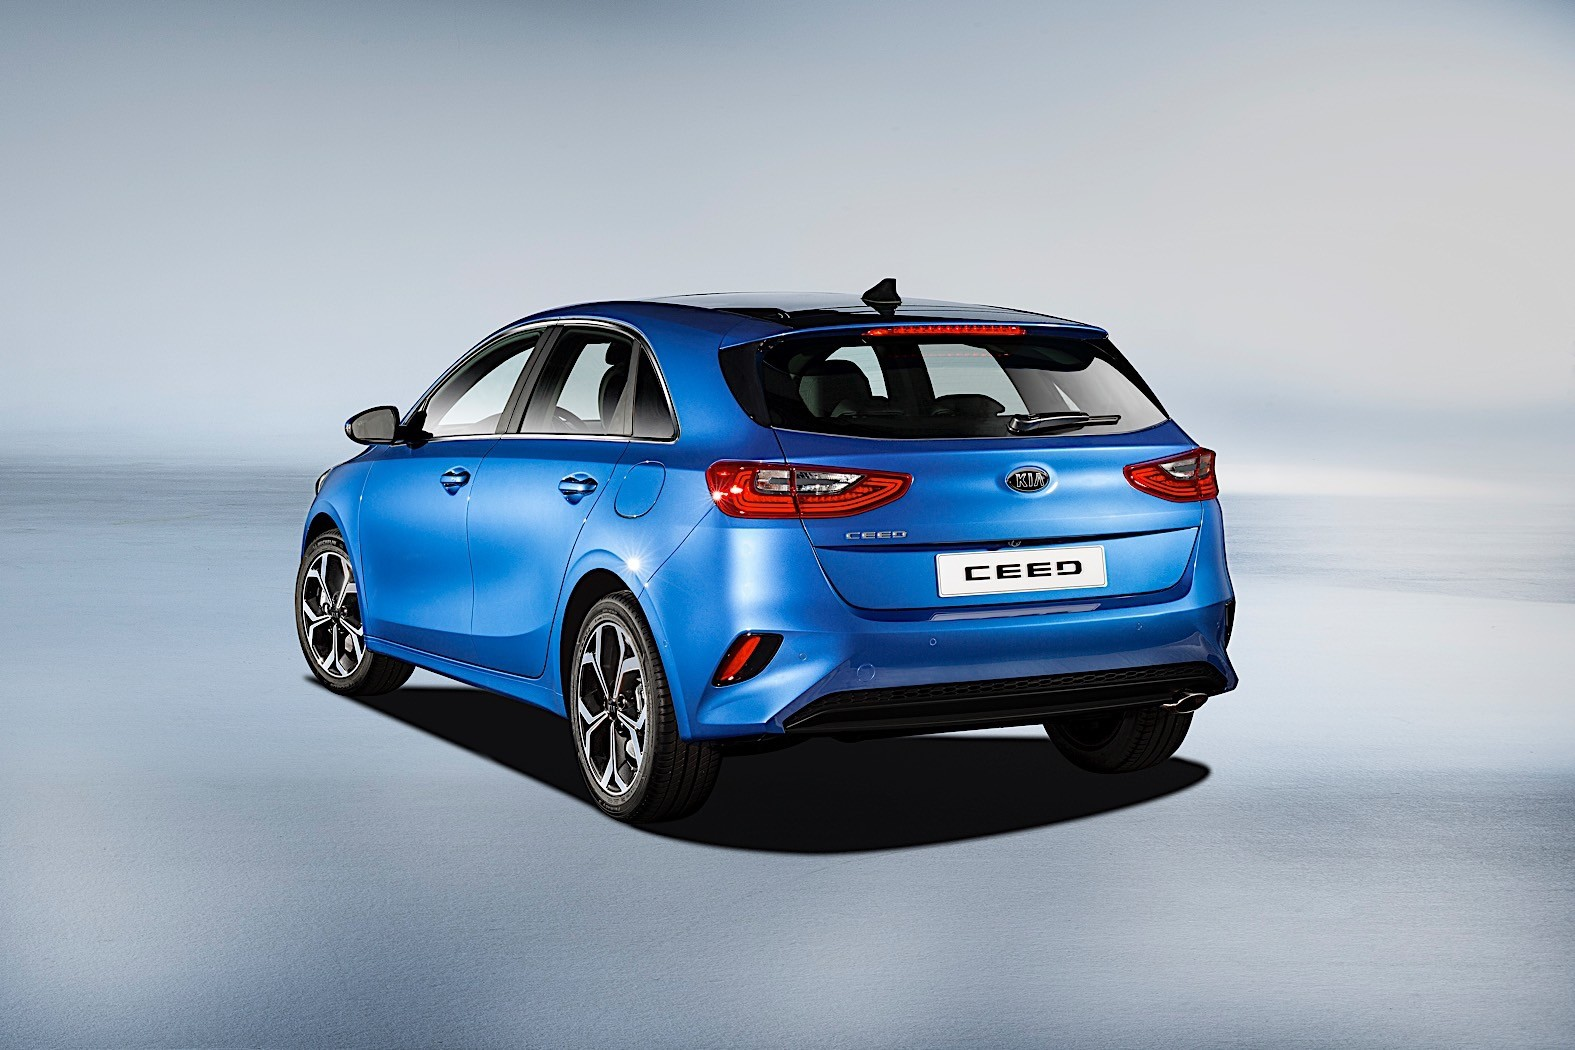 2018 kia ceed going mild hybrid plug in hybrid considered. Black Bedroom Furniture Sets. Home Design Ideas